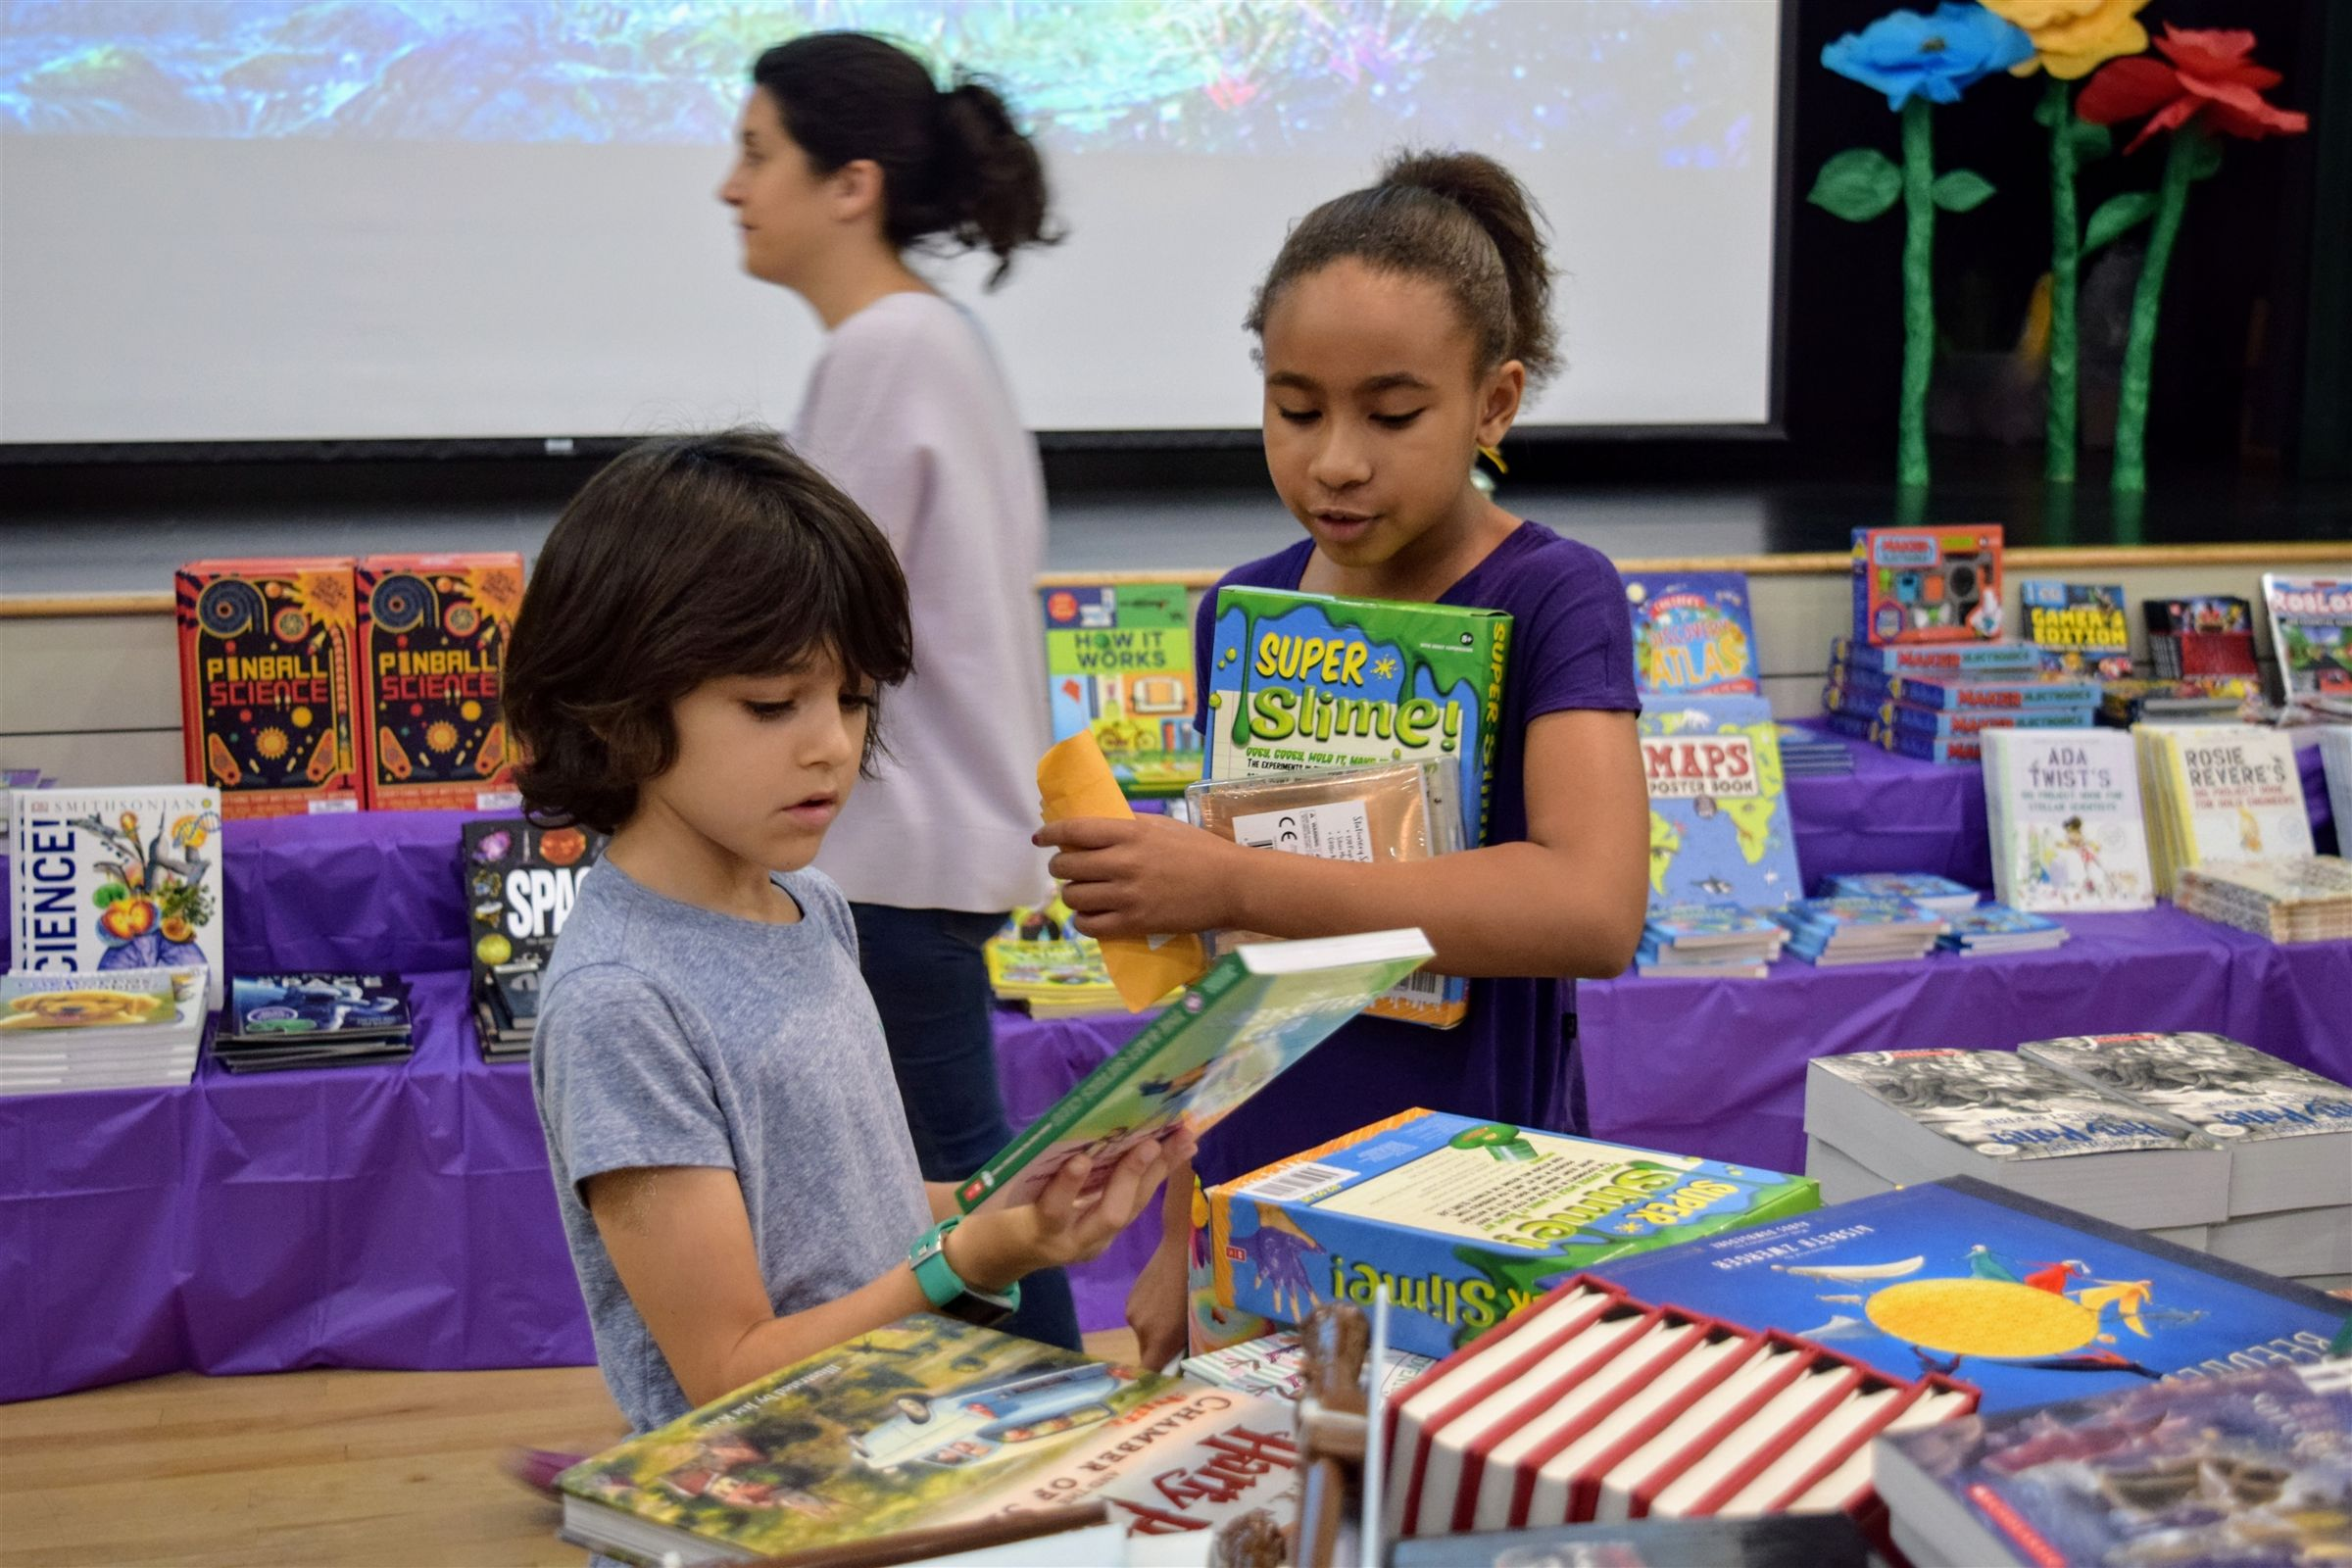 Students, parents, and teachers alike delight in picking out favoite titles each fall at the Book Fair.